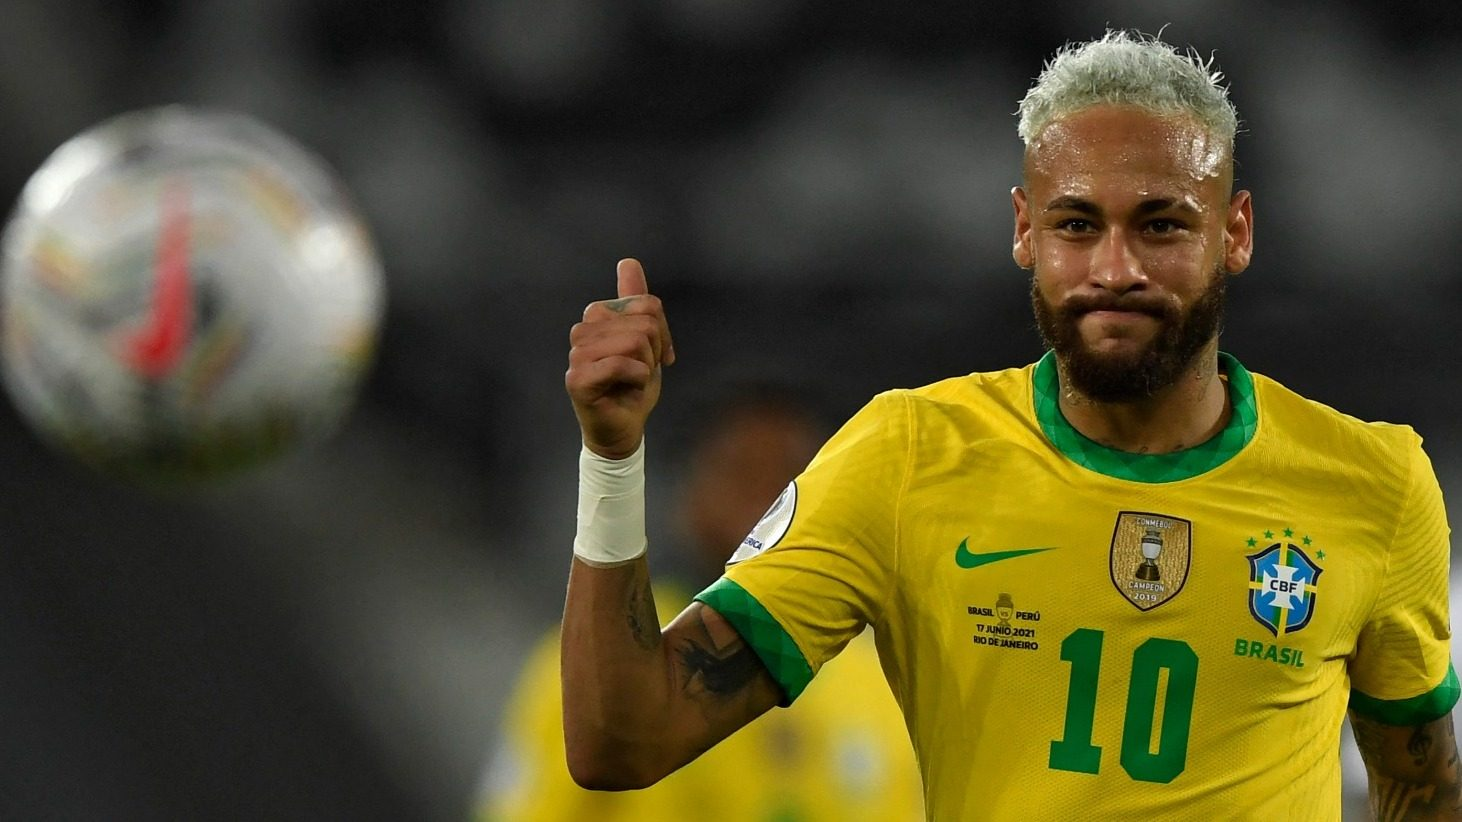 Brazil S Football Squad For Tokyo 2020 Olympics Neymar Left Out